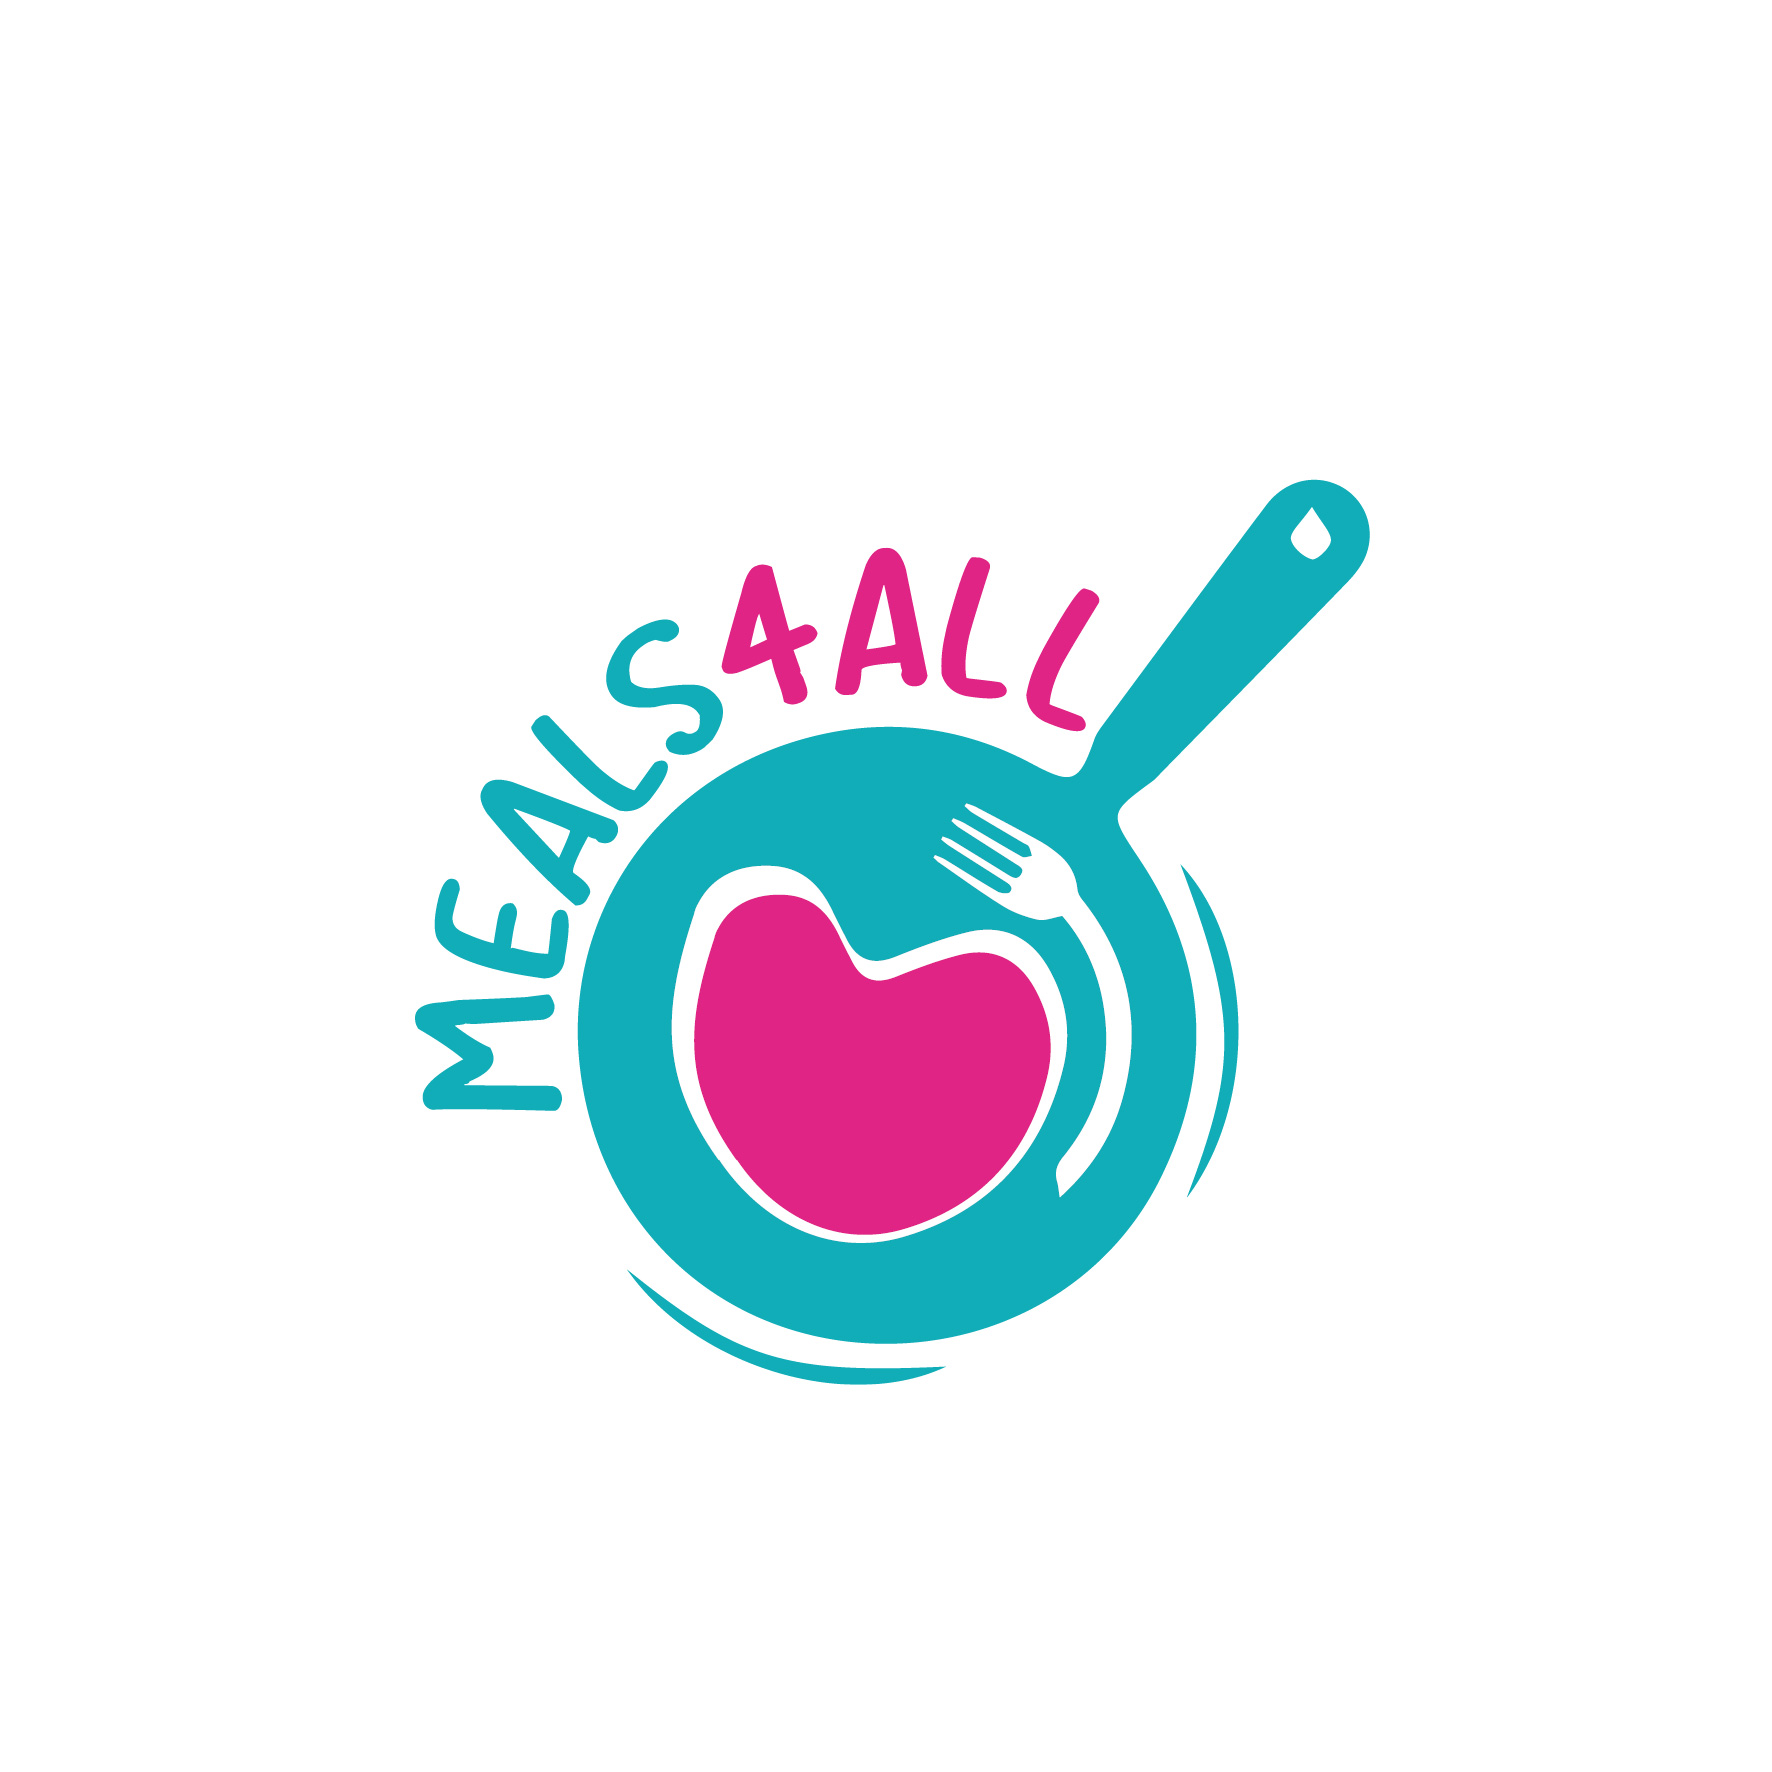 MEALS 4 ALL • Logotype